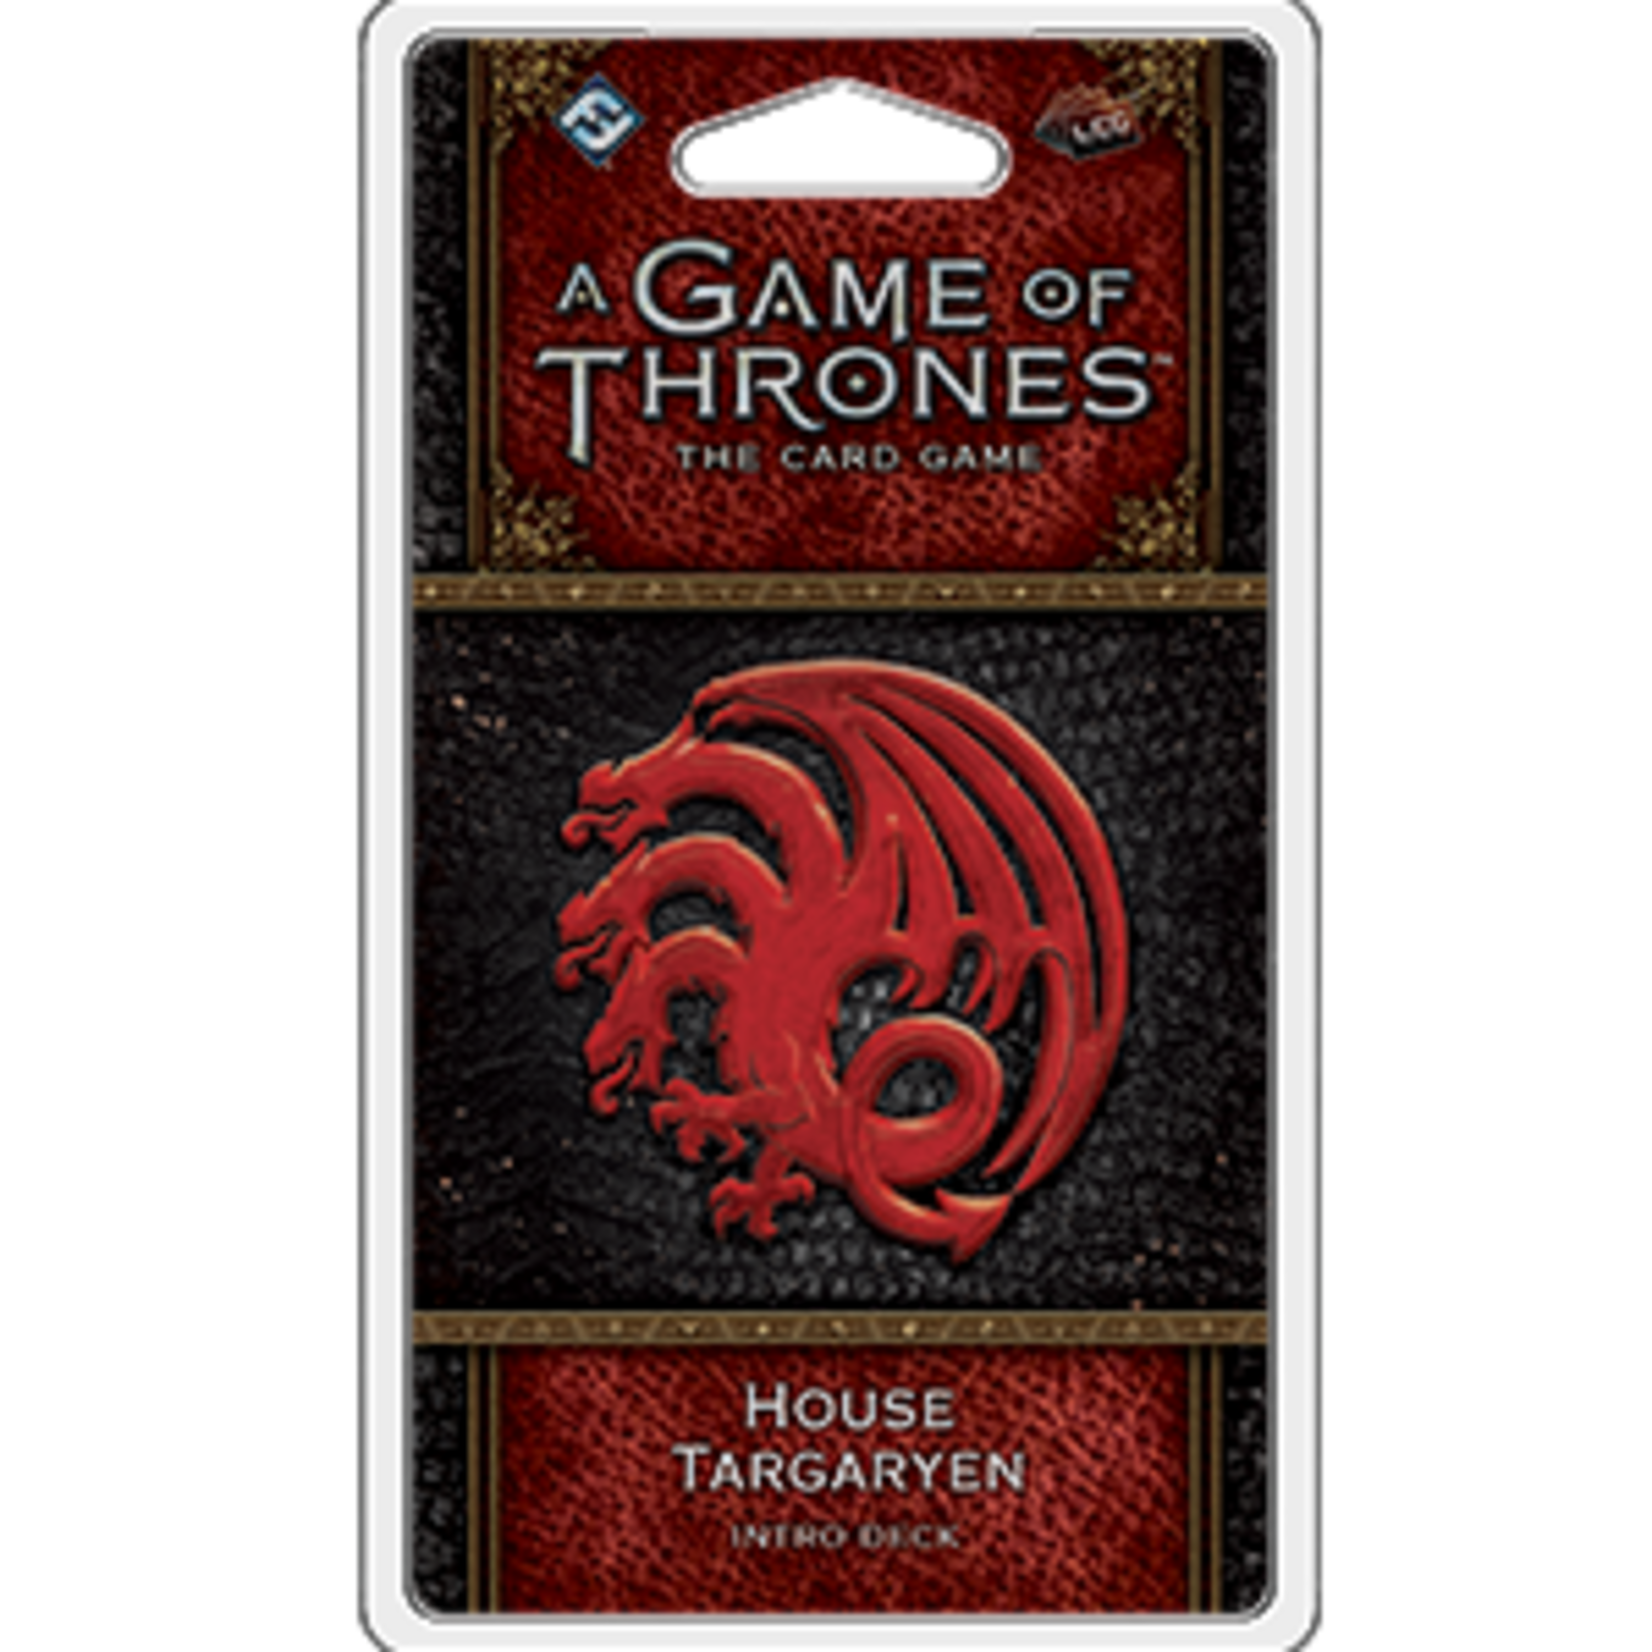 Fantasy Flight Games A Game of Thrones Card Game 2nd Edition: House Targaryen Intro Deck